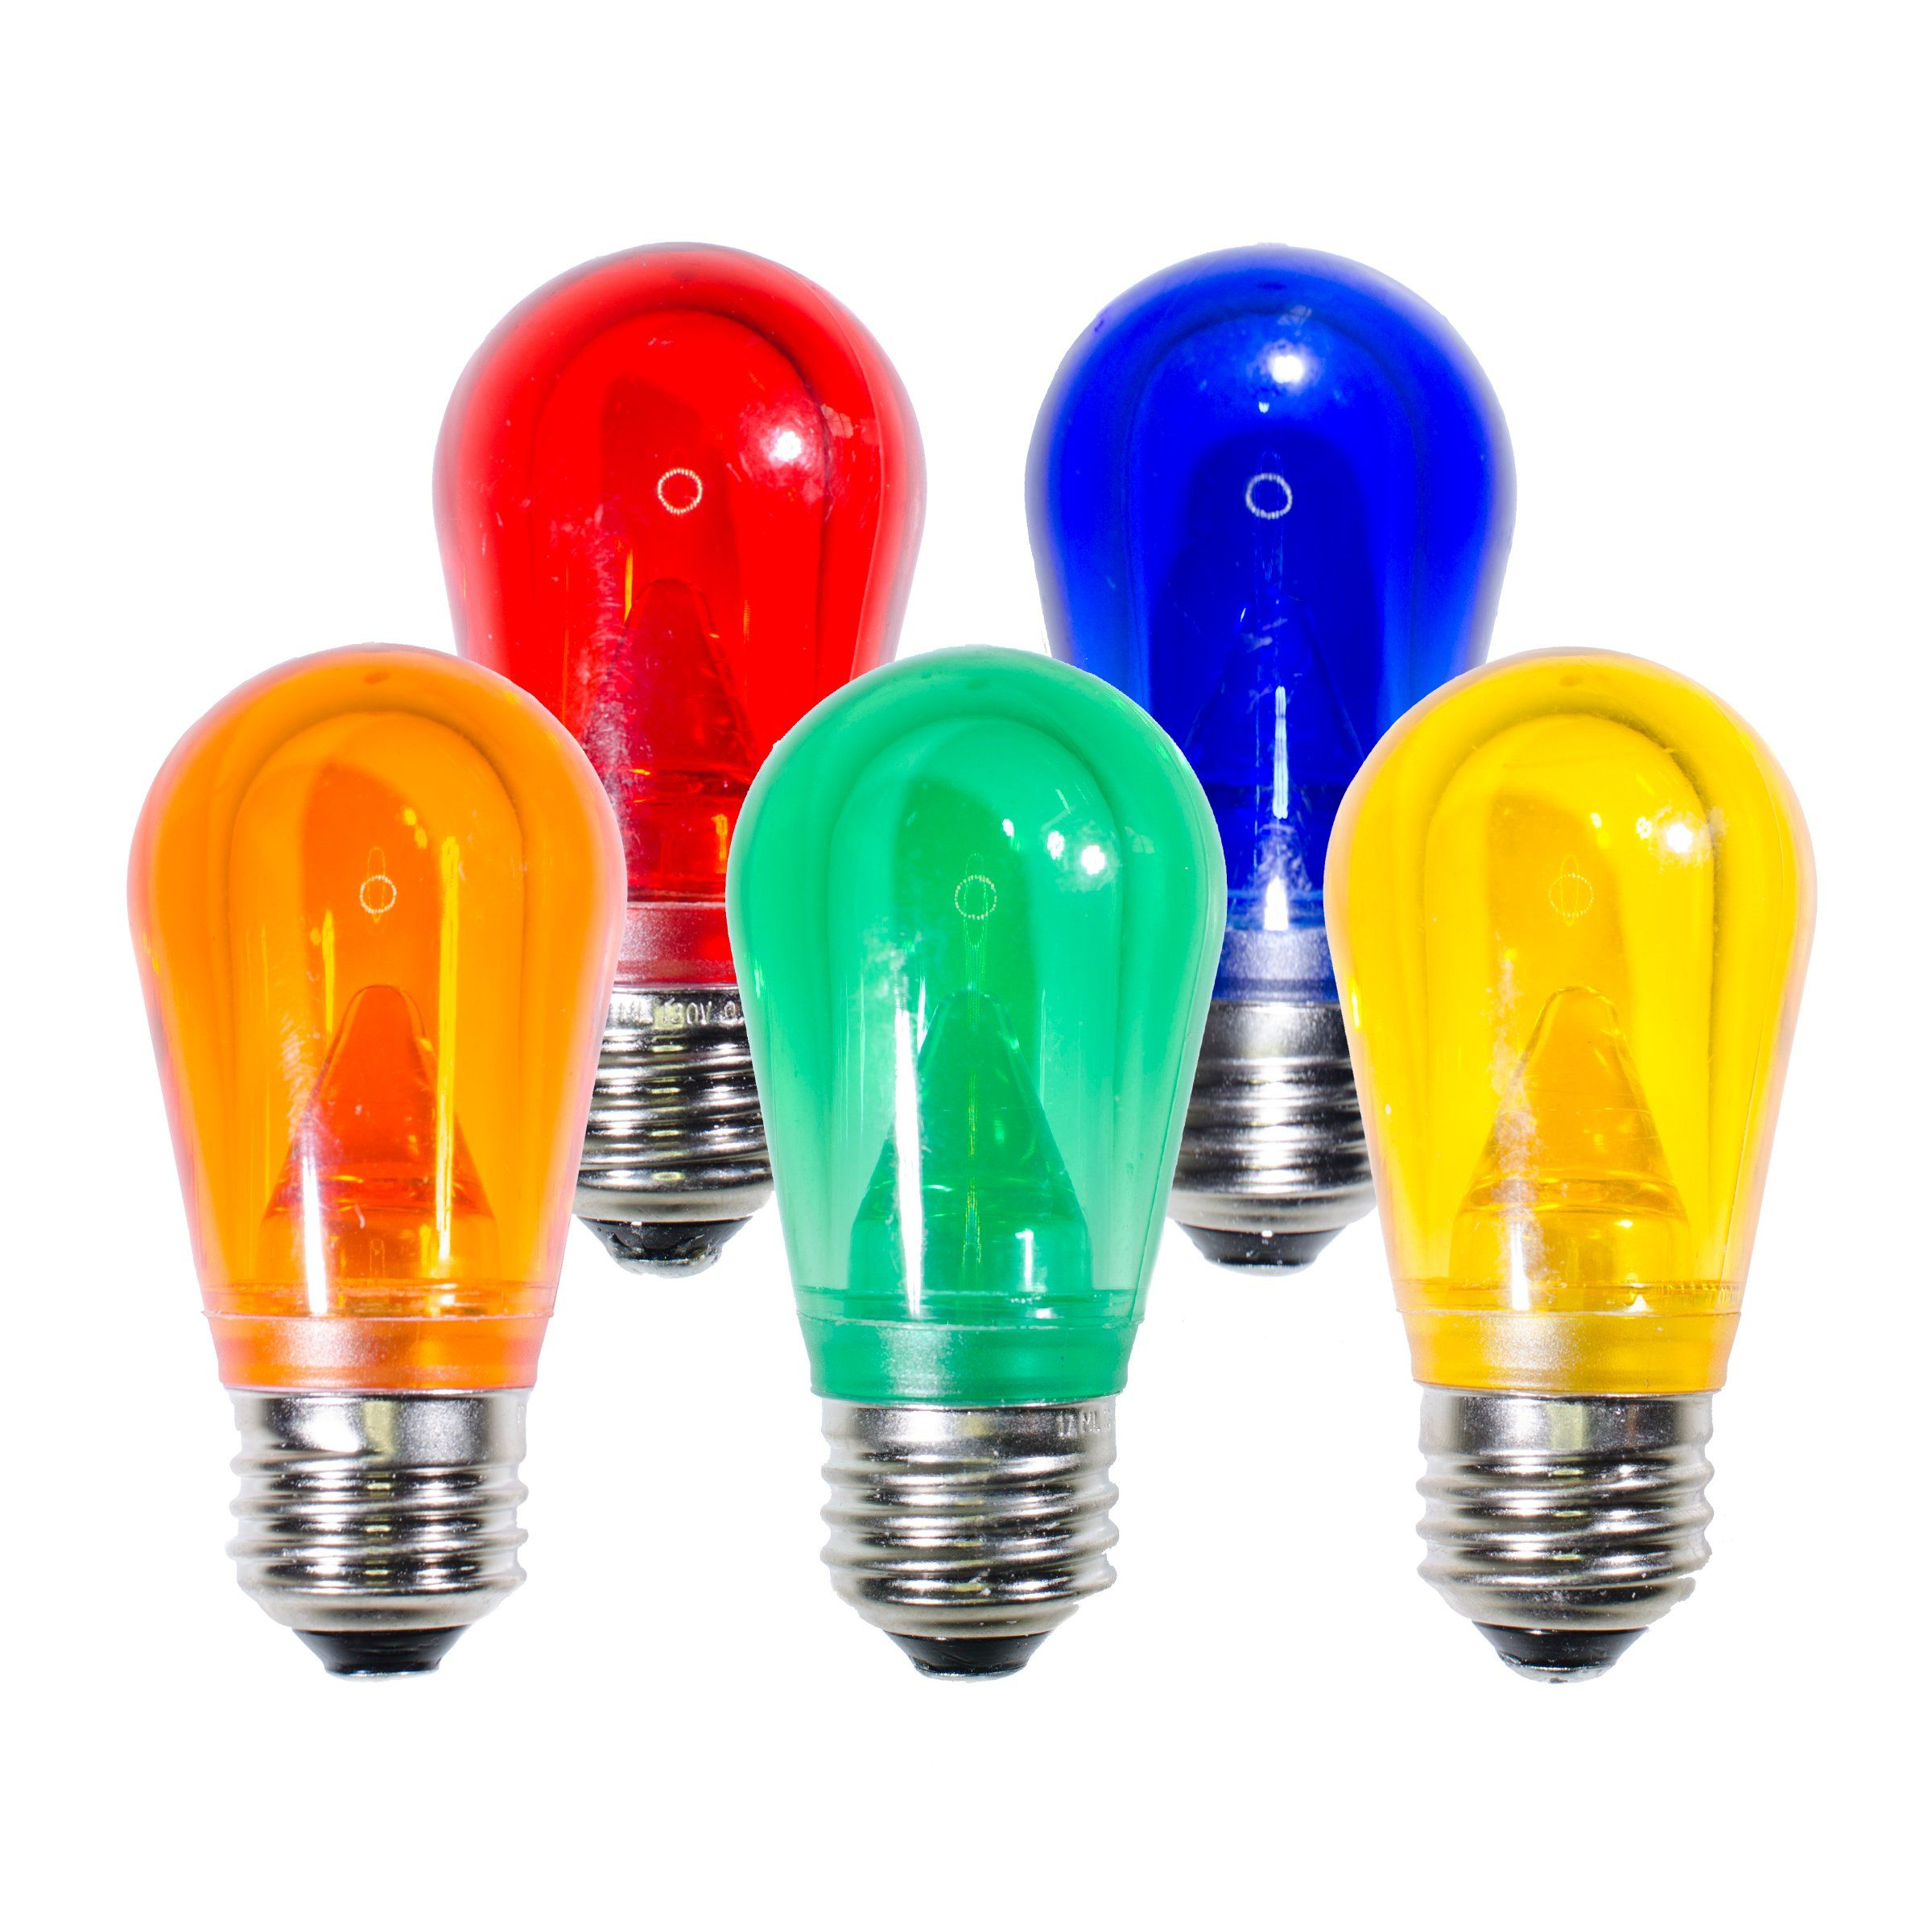 25 Multi Color Christmas Light Replacement Bulbs